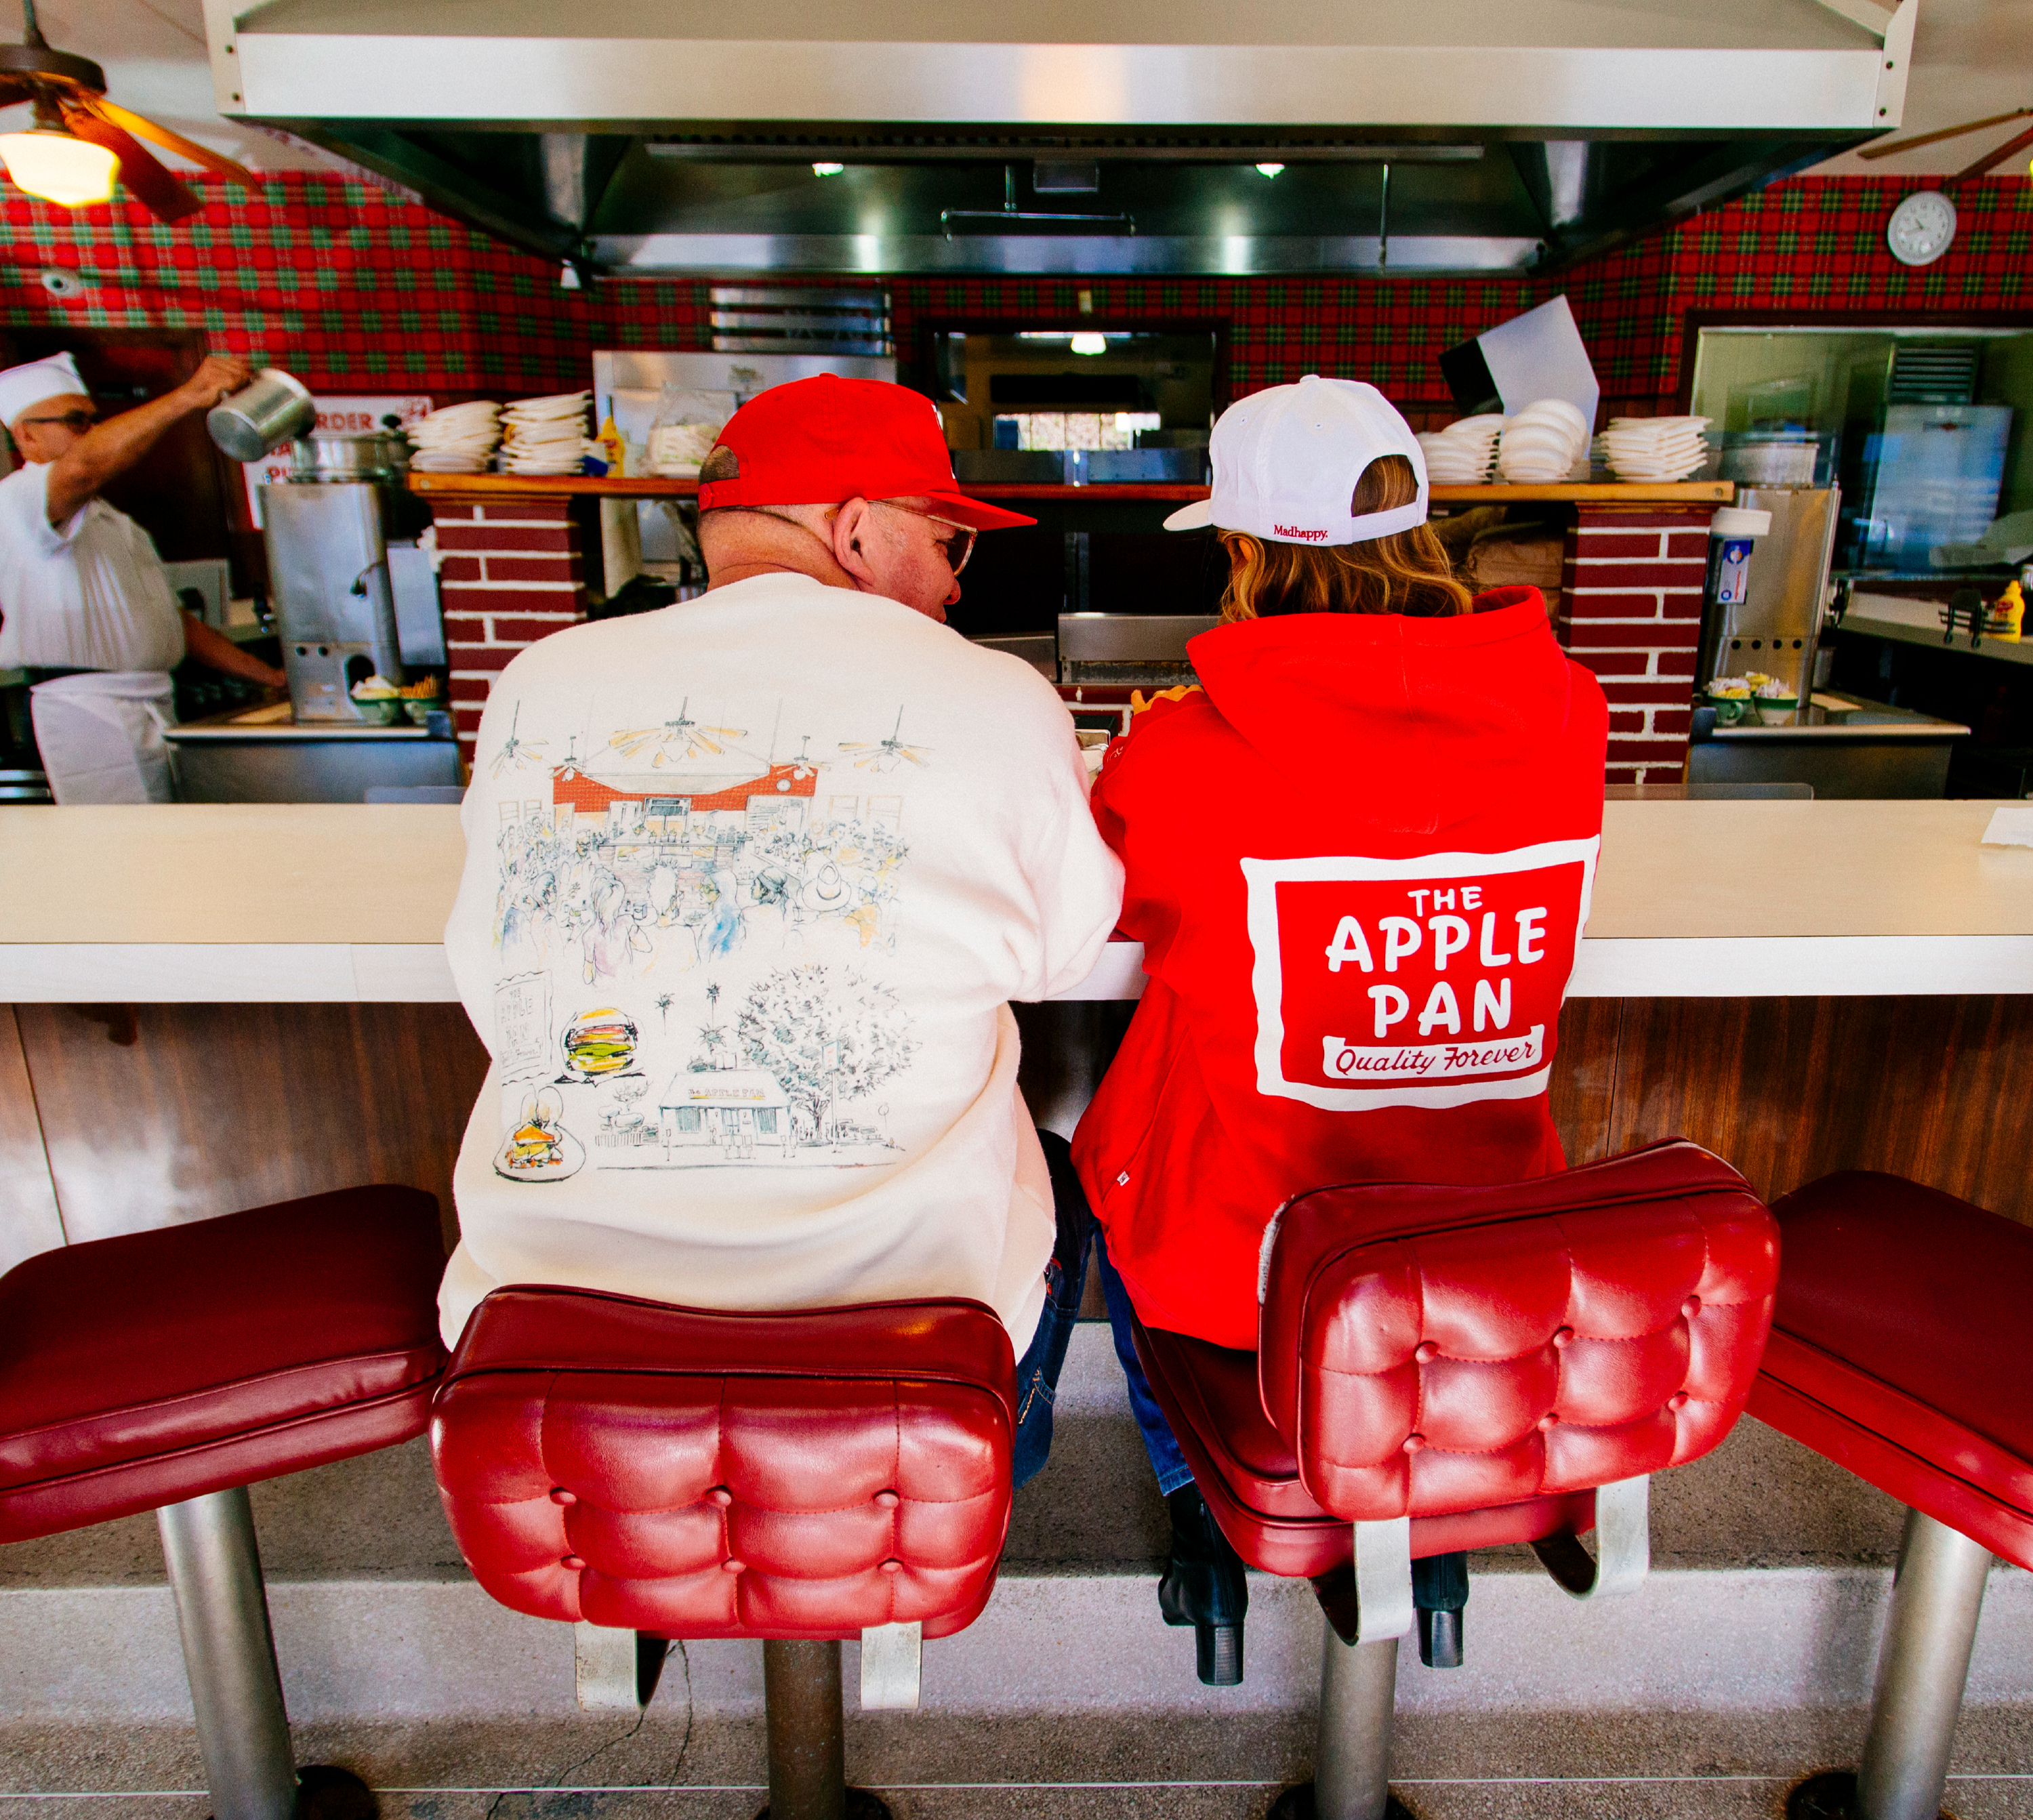 A couple wears Apple Pan branded clothing inside of an old burger restaurant.